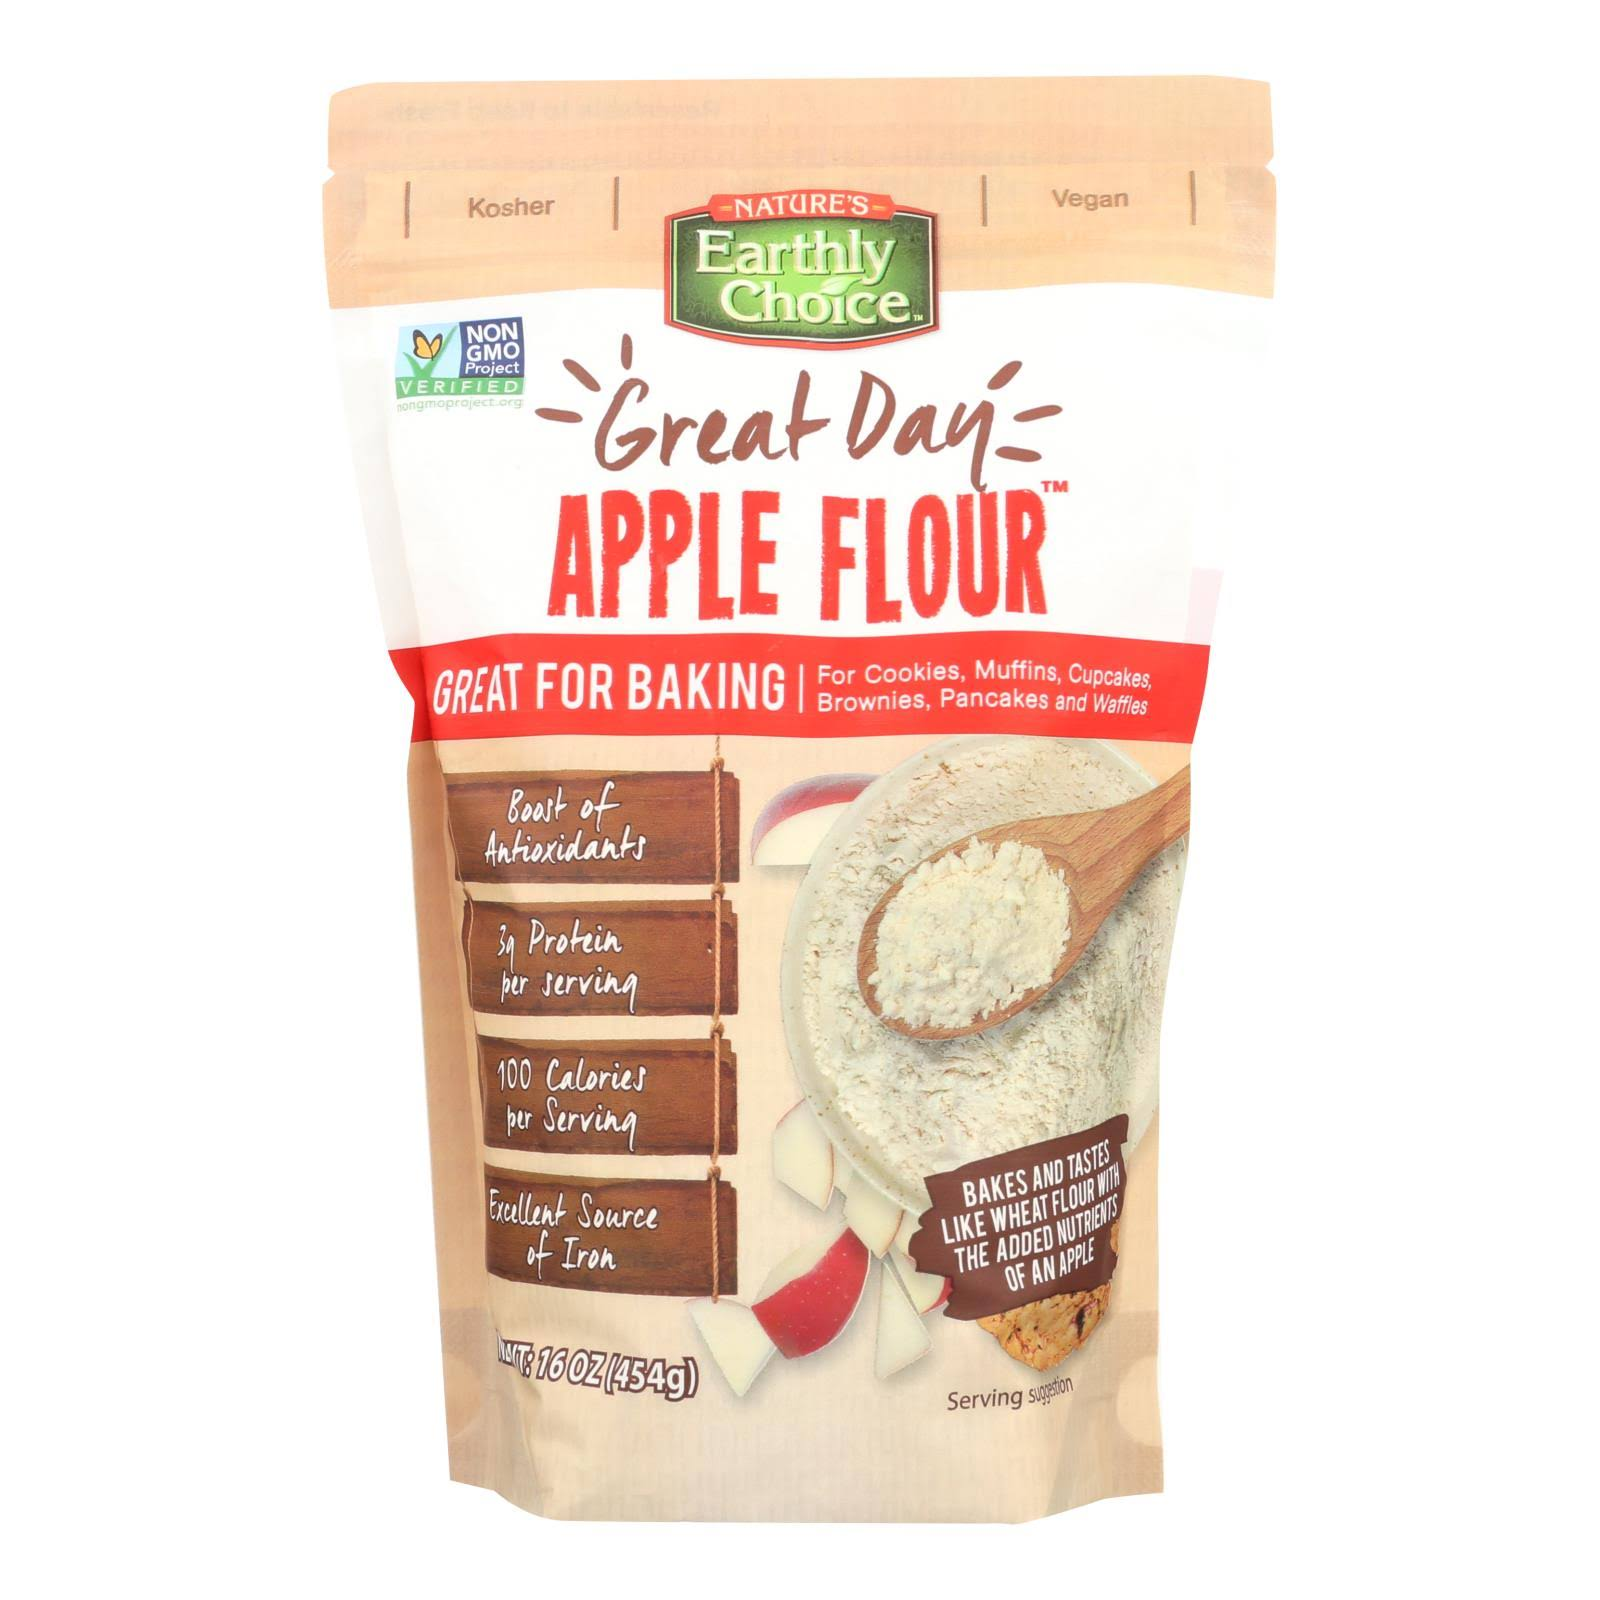 Natures Earthly Choice Baking Mix, Apple Flour - 16 oz